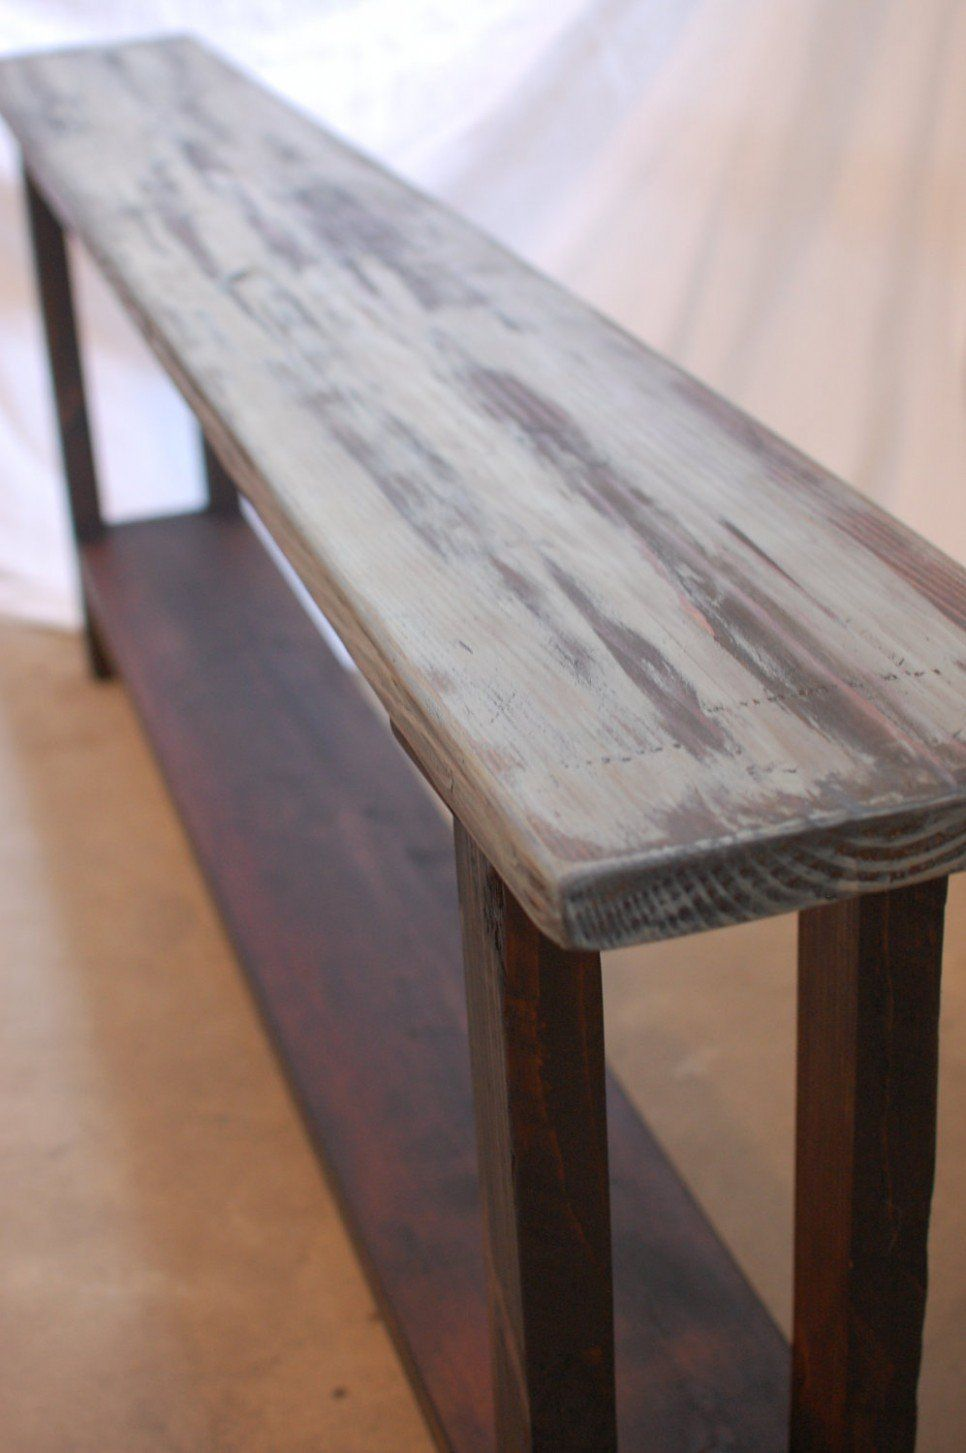 Furniture  Long And Narrow DIY Console Table Made From Reclaimed Wood For  Saving Hallway Spaces. Furniture  Long And Narrow DIY Console Table Made From Reclaimed